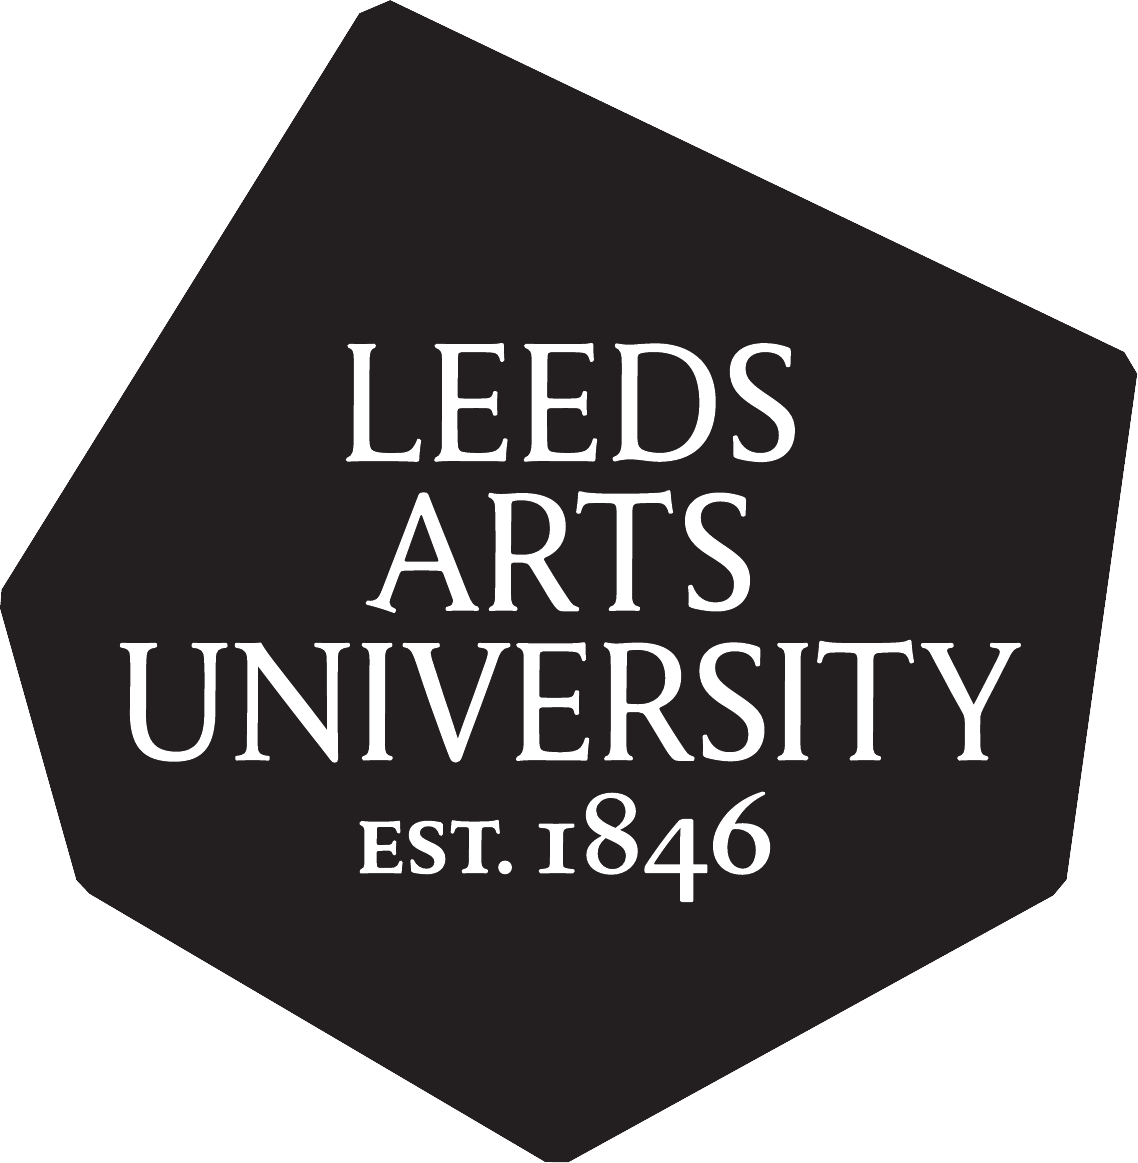 Leeds Arts University Repository